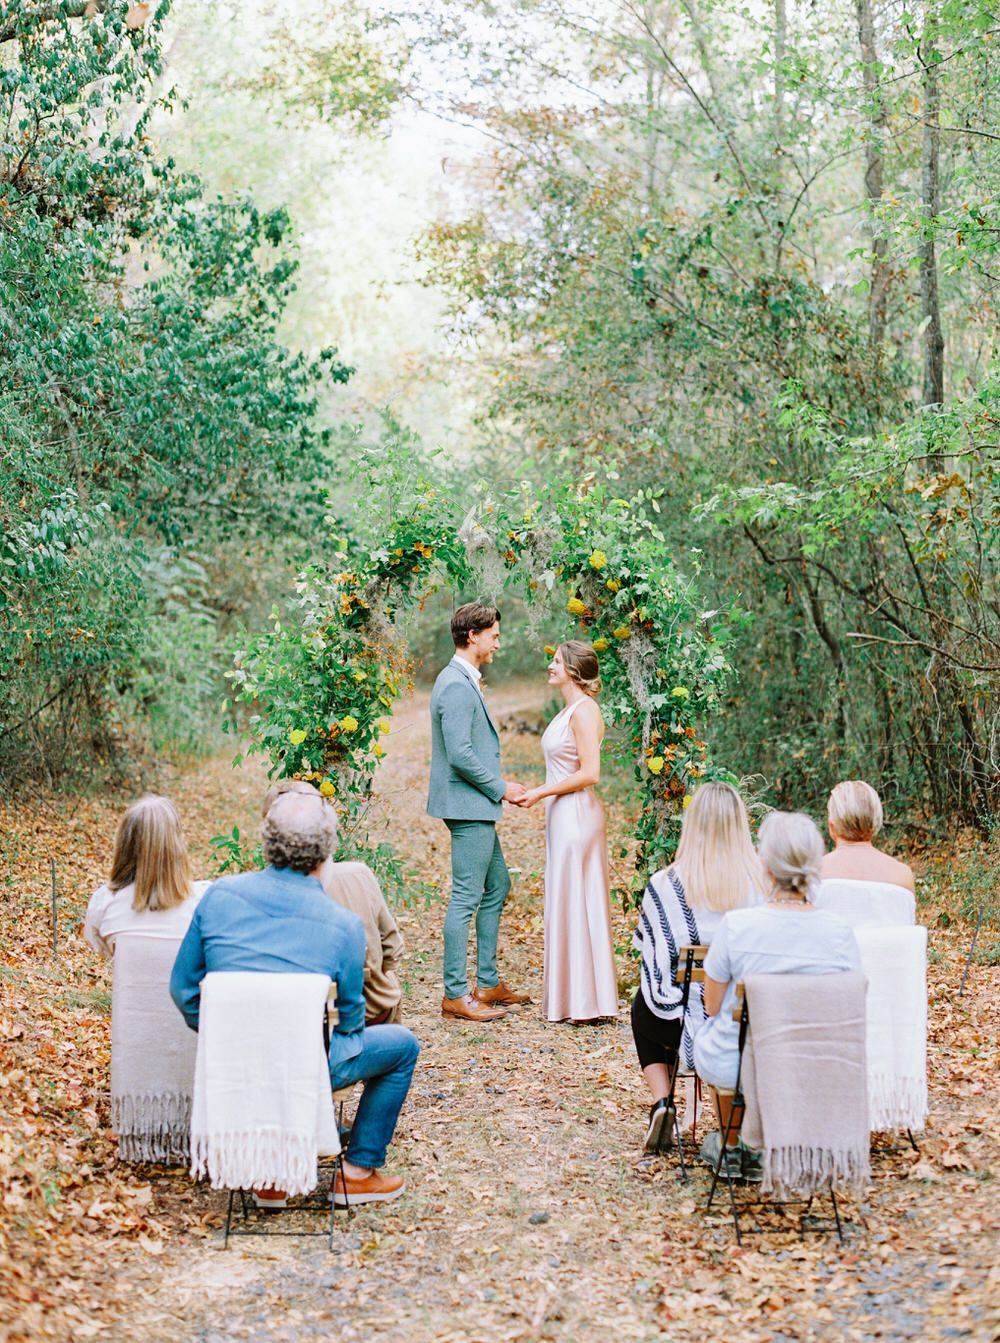 This Fall Micro Wedding At Wavering Place Is Giving Us All The Pretty Thanksgiving Vibes Ruffled Wedding Inspiration Fall Small Outdoor Wedding Small Weddings Ceremony